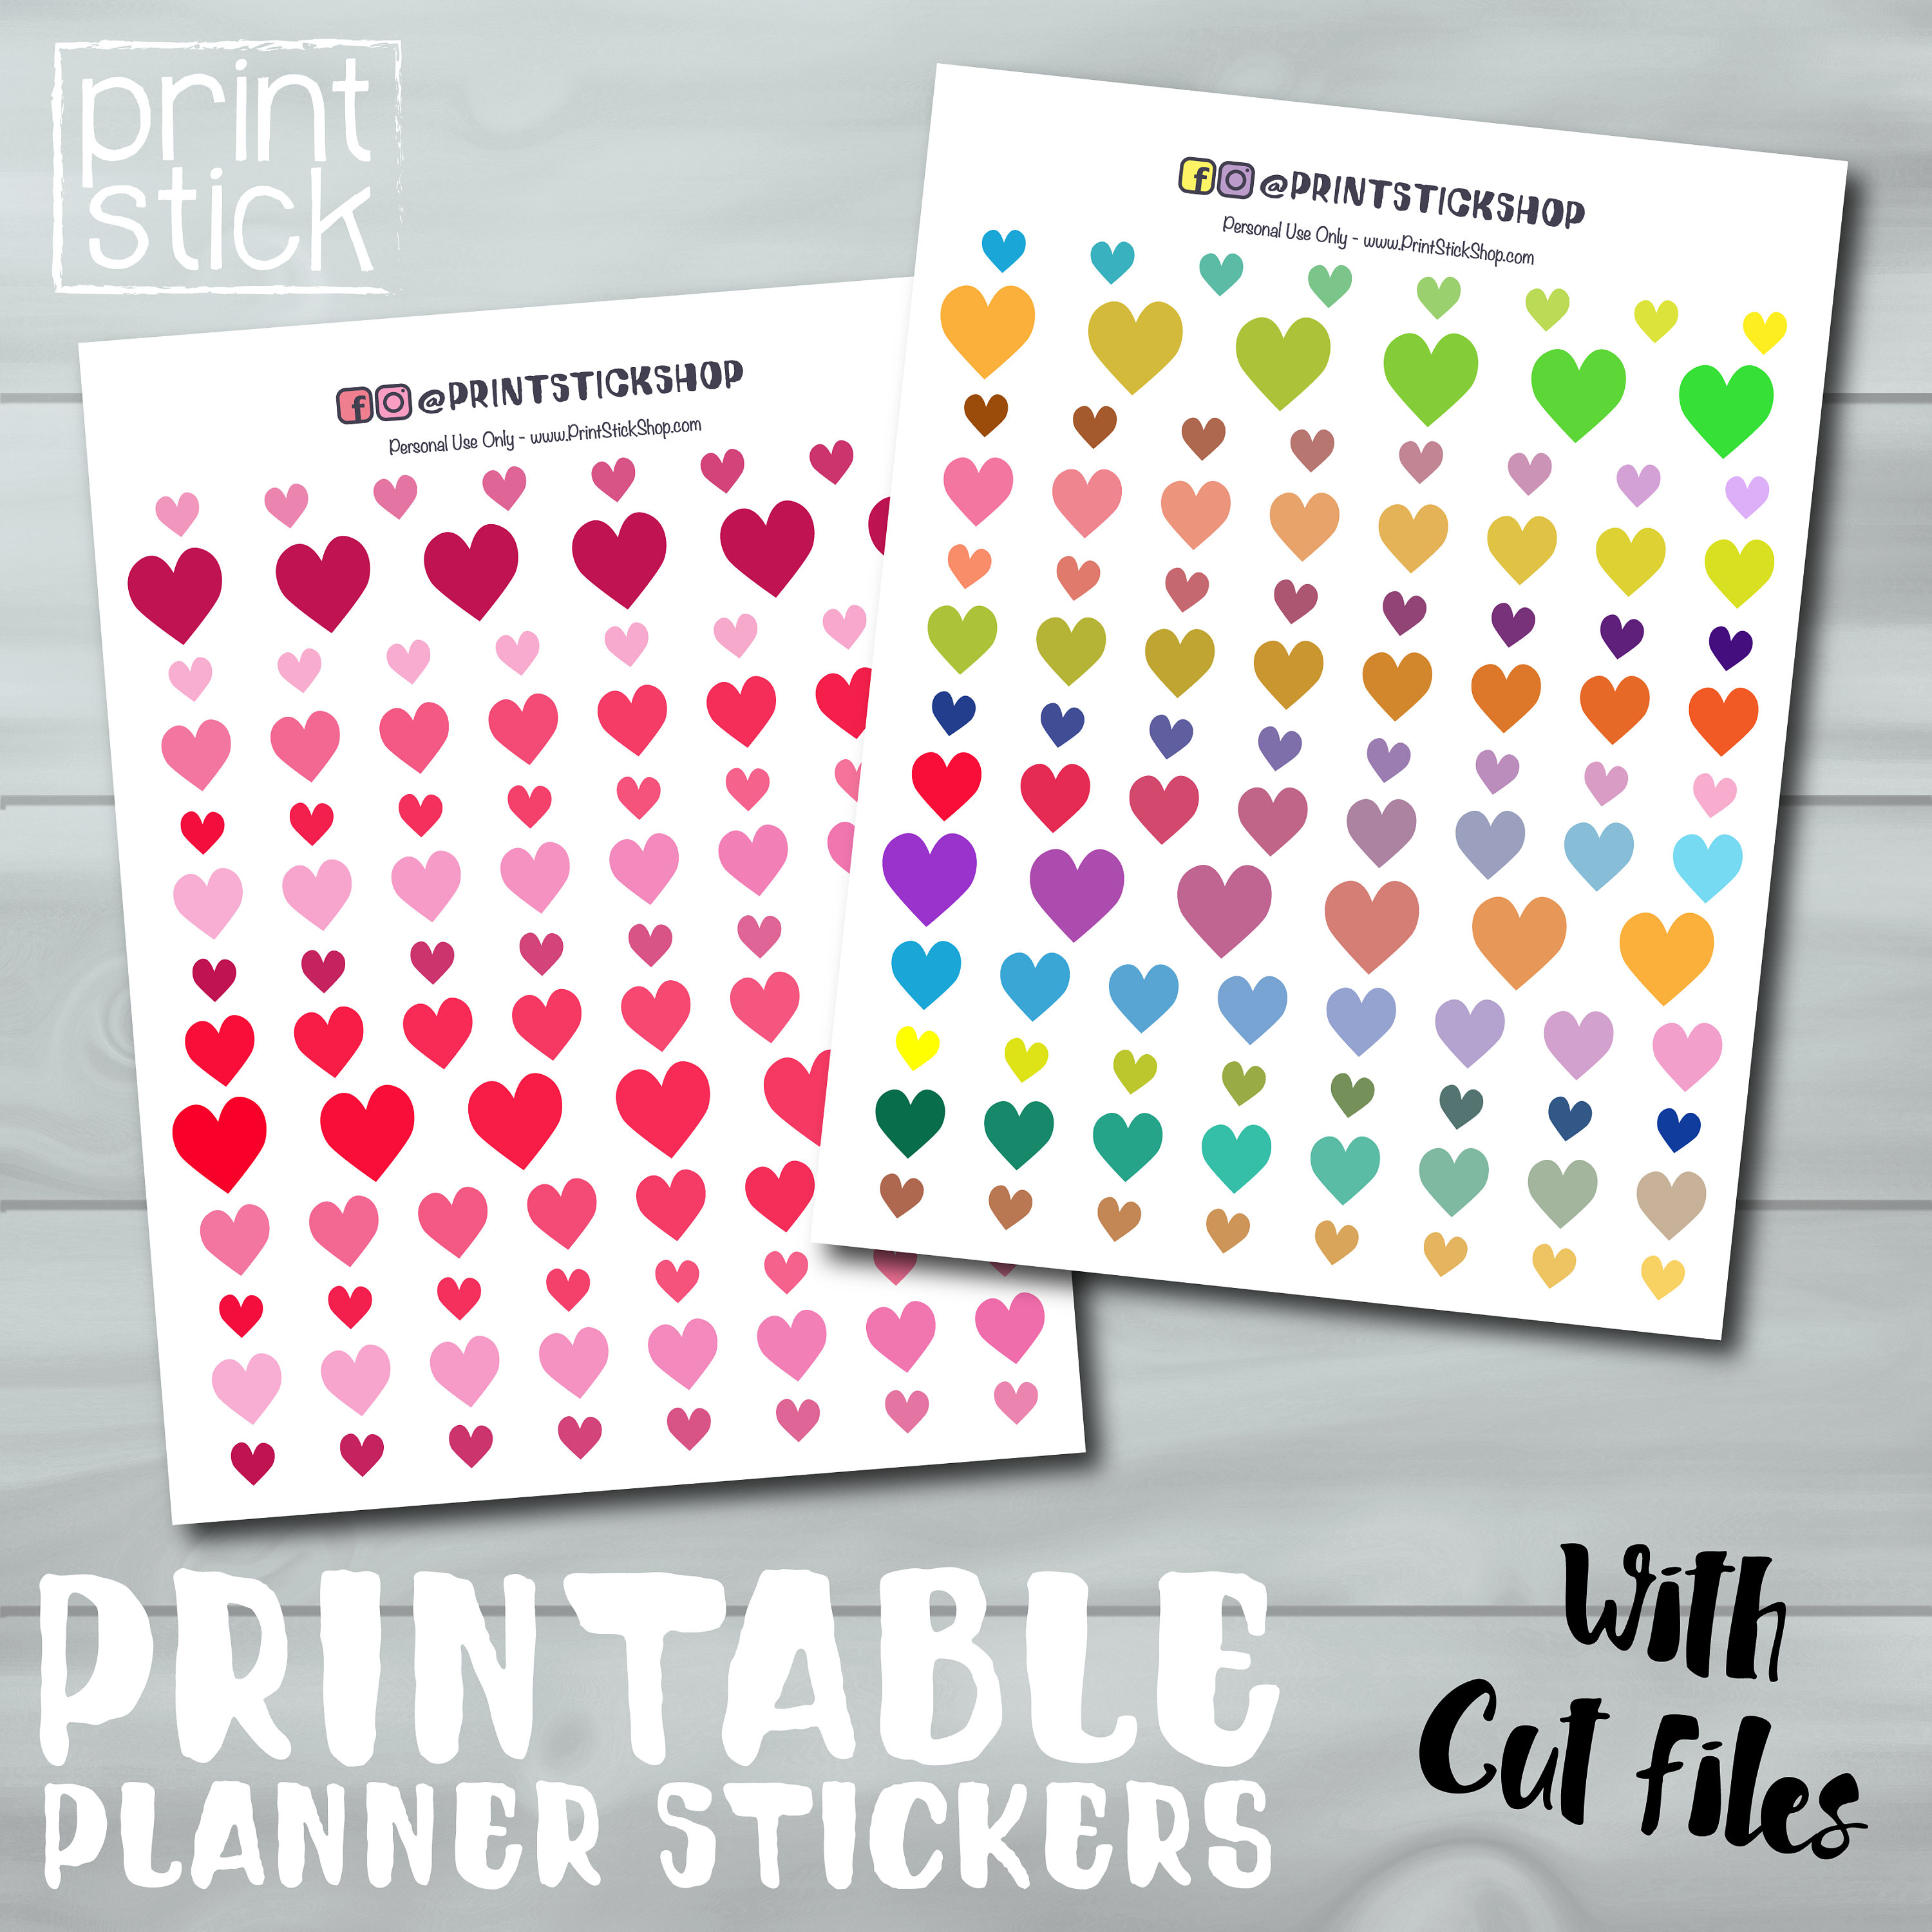 photo relating to Printable Stickers Sheets identify Middle Stickers - Printable Sticker Sheet - Planner Stickers for Erin Condren, Joyful Planner or any other